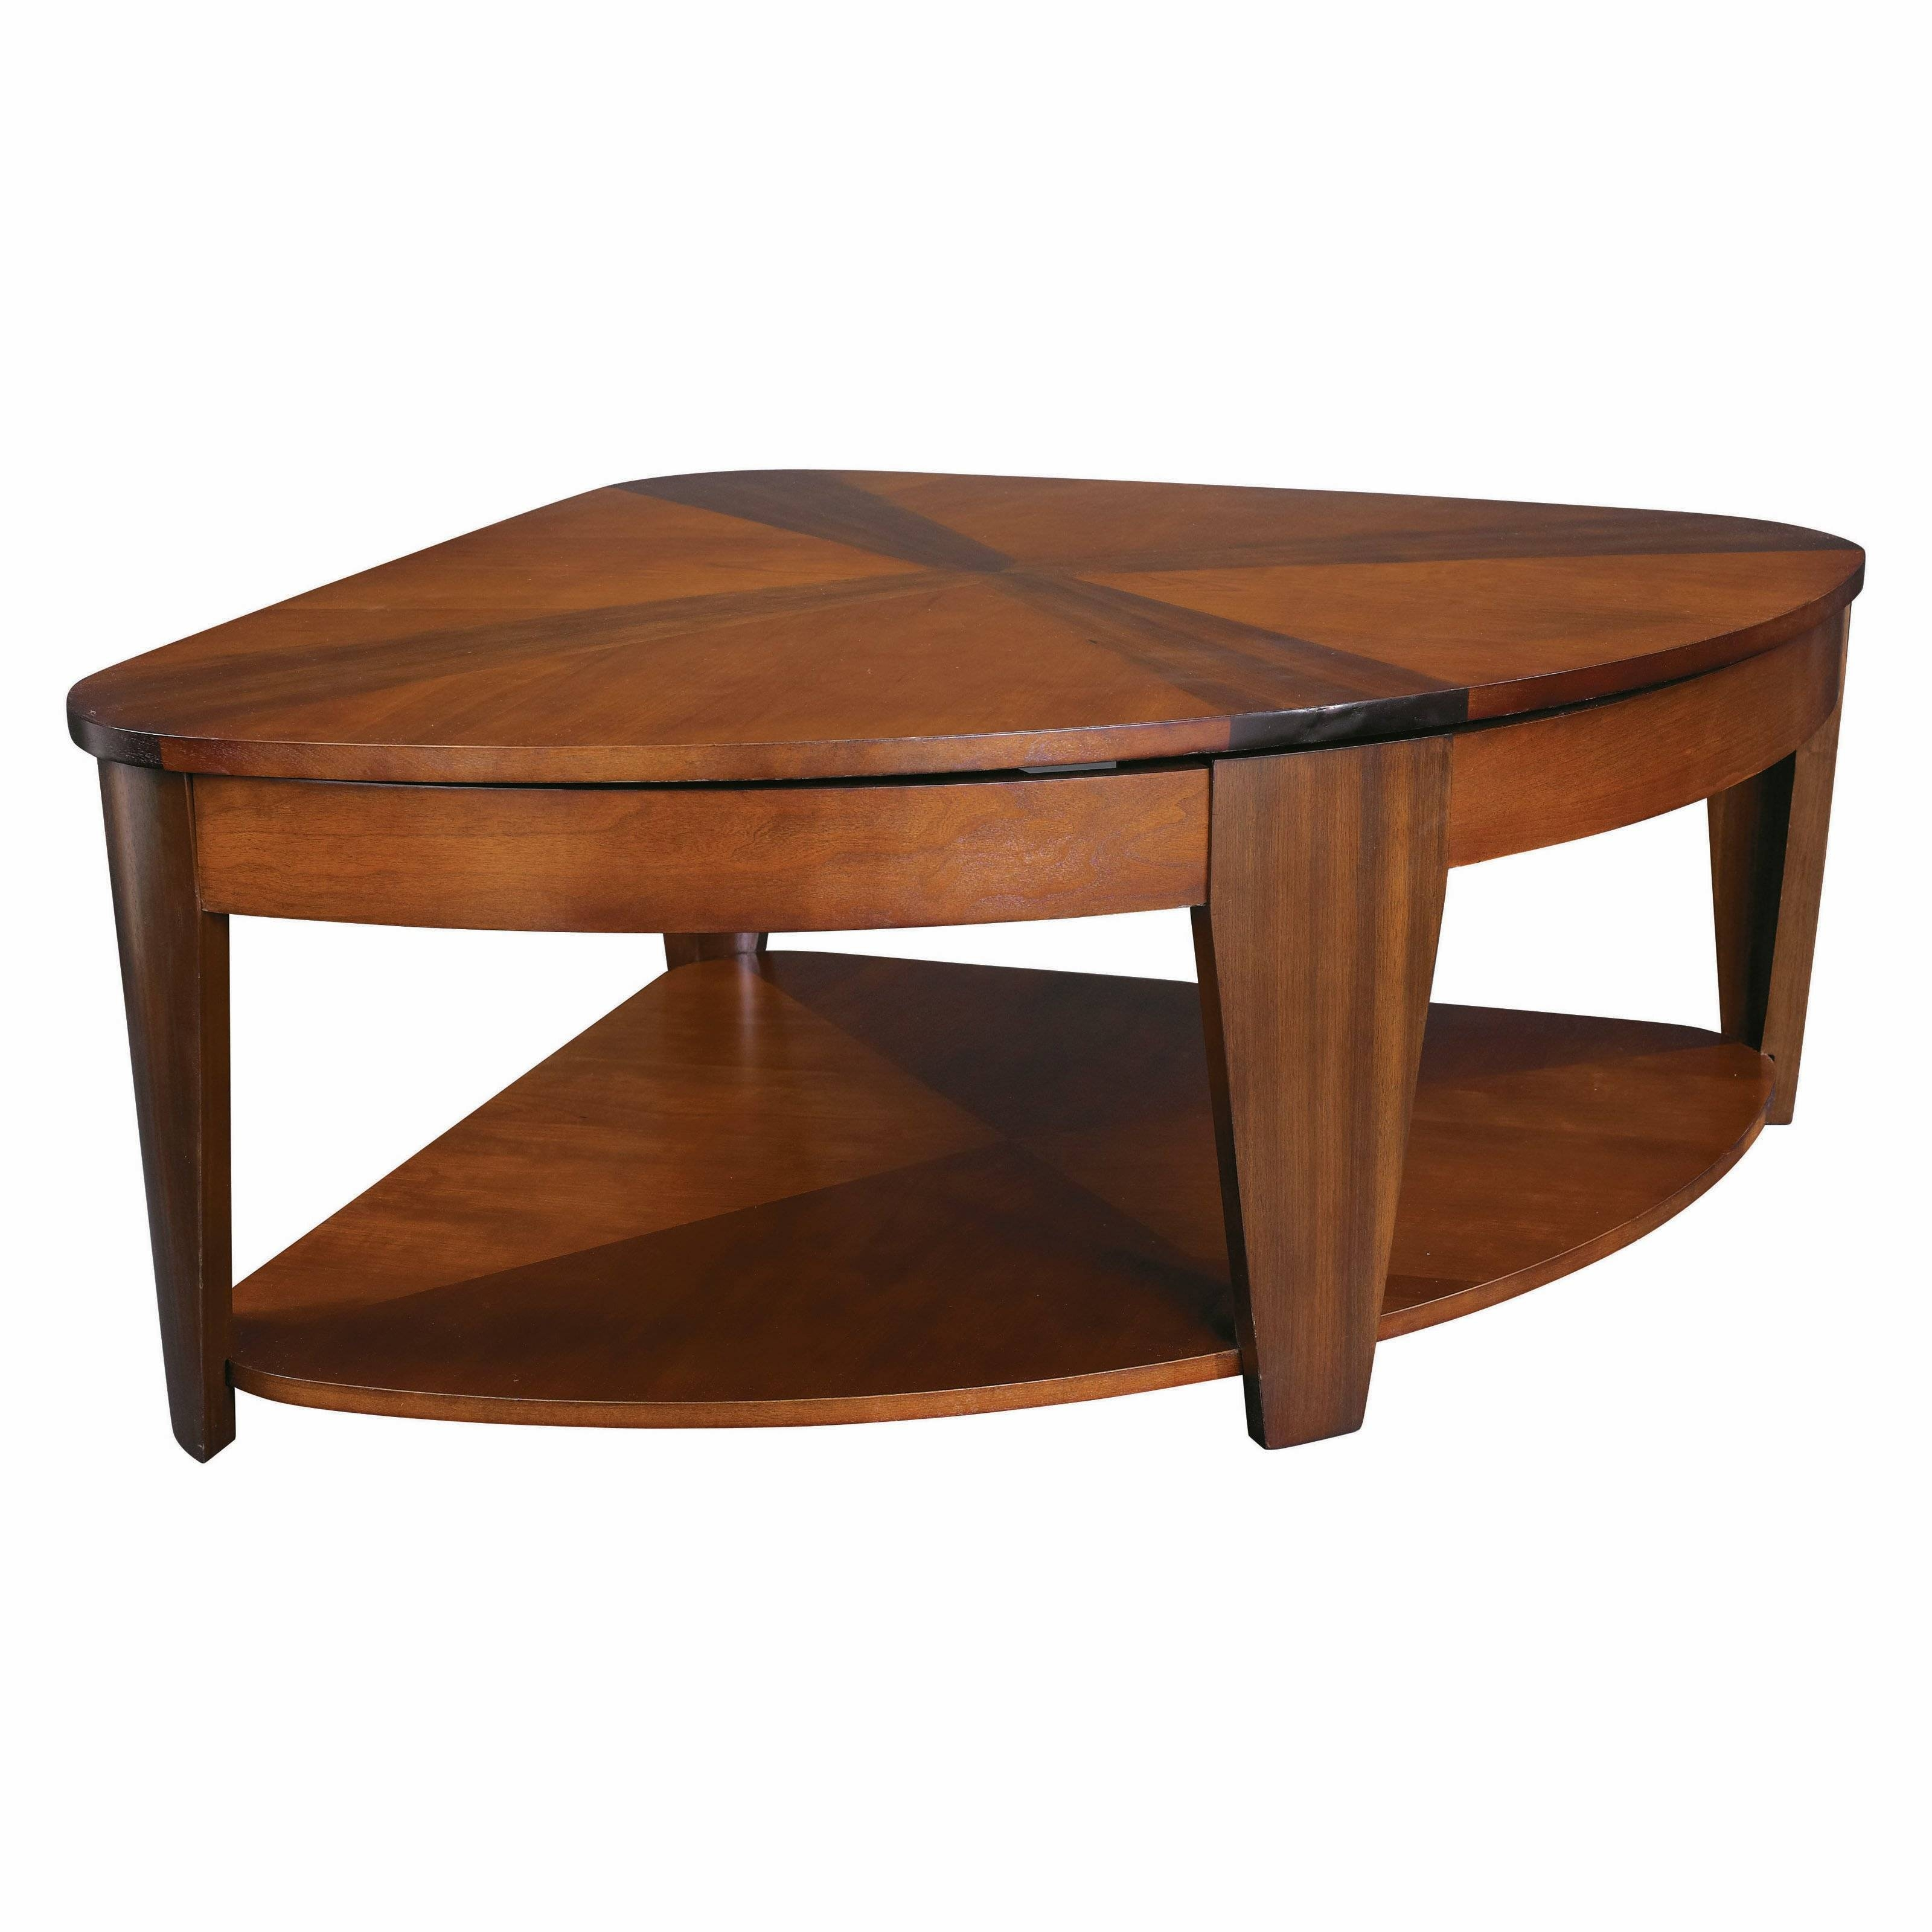 Hammary Oasis Wedge Lift-Top Coffee Table | Hayneedle with regard to Corner Coffee Tables (Image 21 of 30)